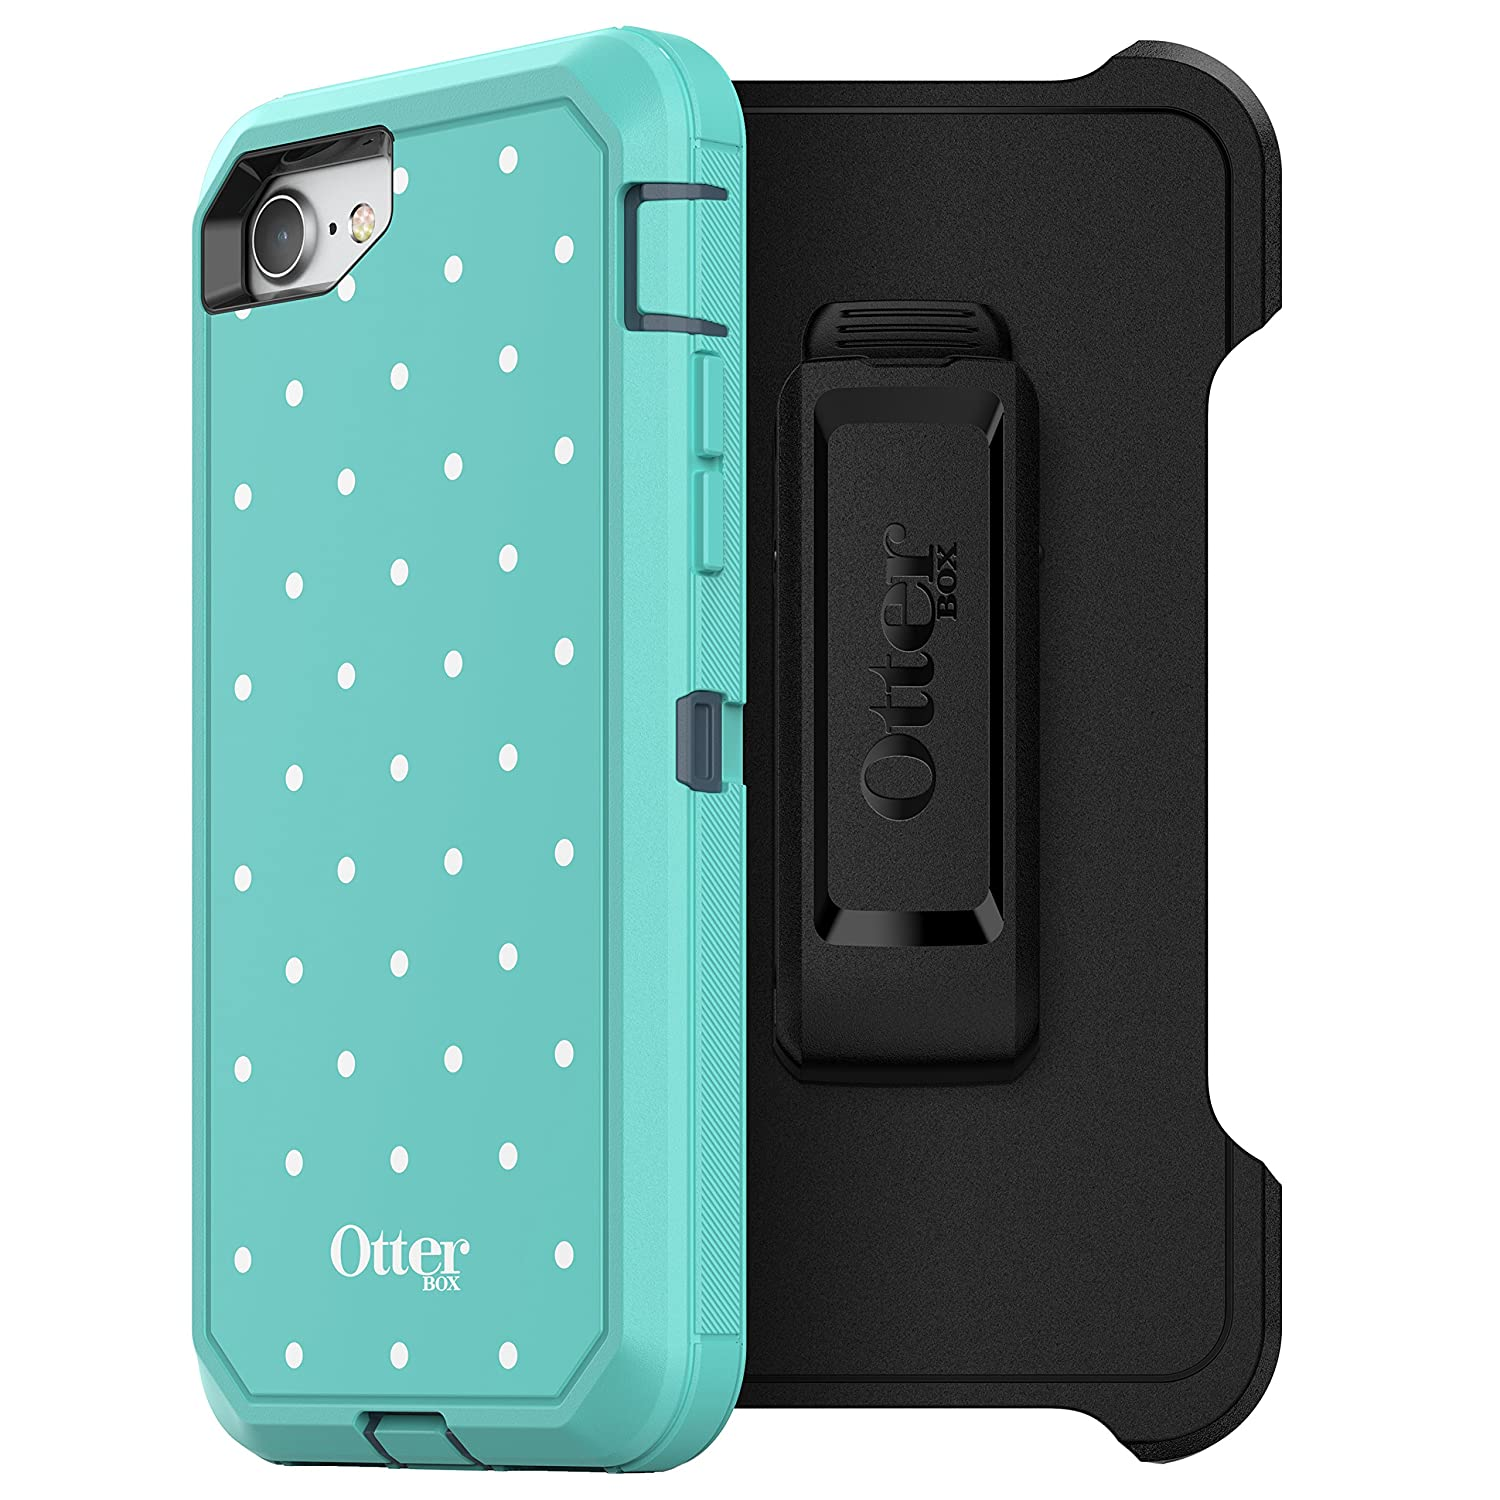 OtterBox DEFENDER SERIES Case for iPhone 8 & iPhone 7 (NOT Plus) - Frustration Free Packaging - BLACK 77-54027